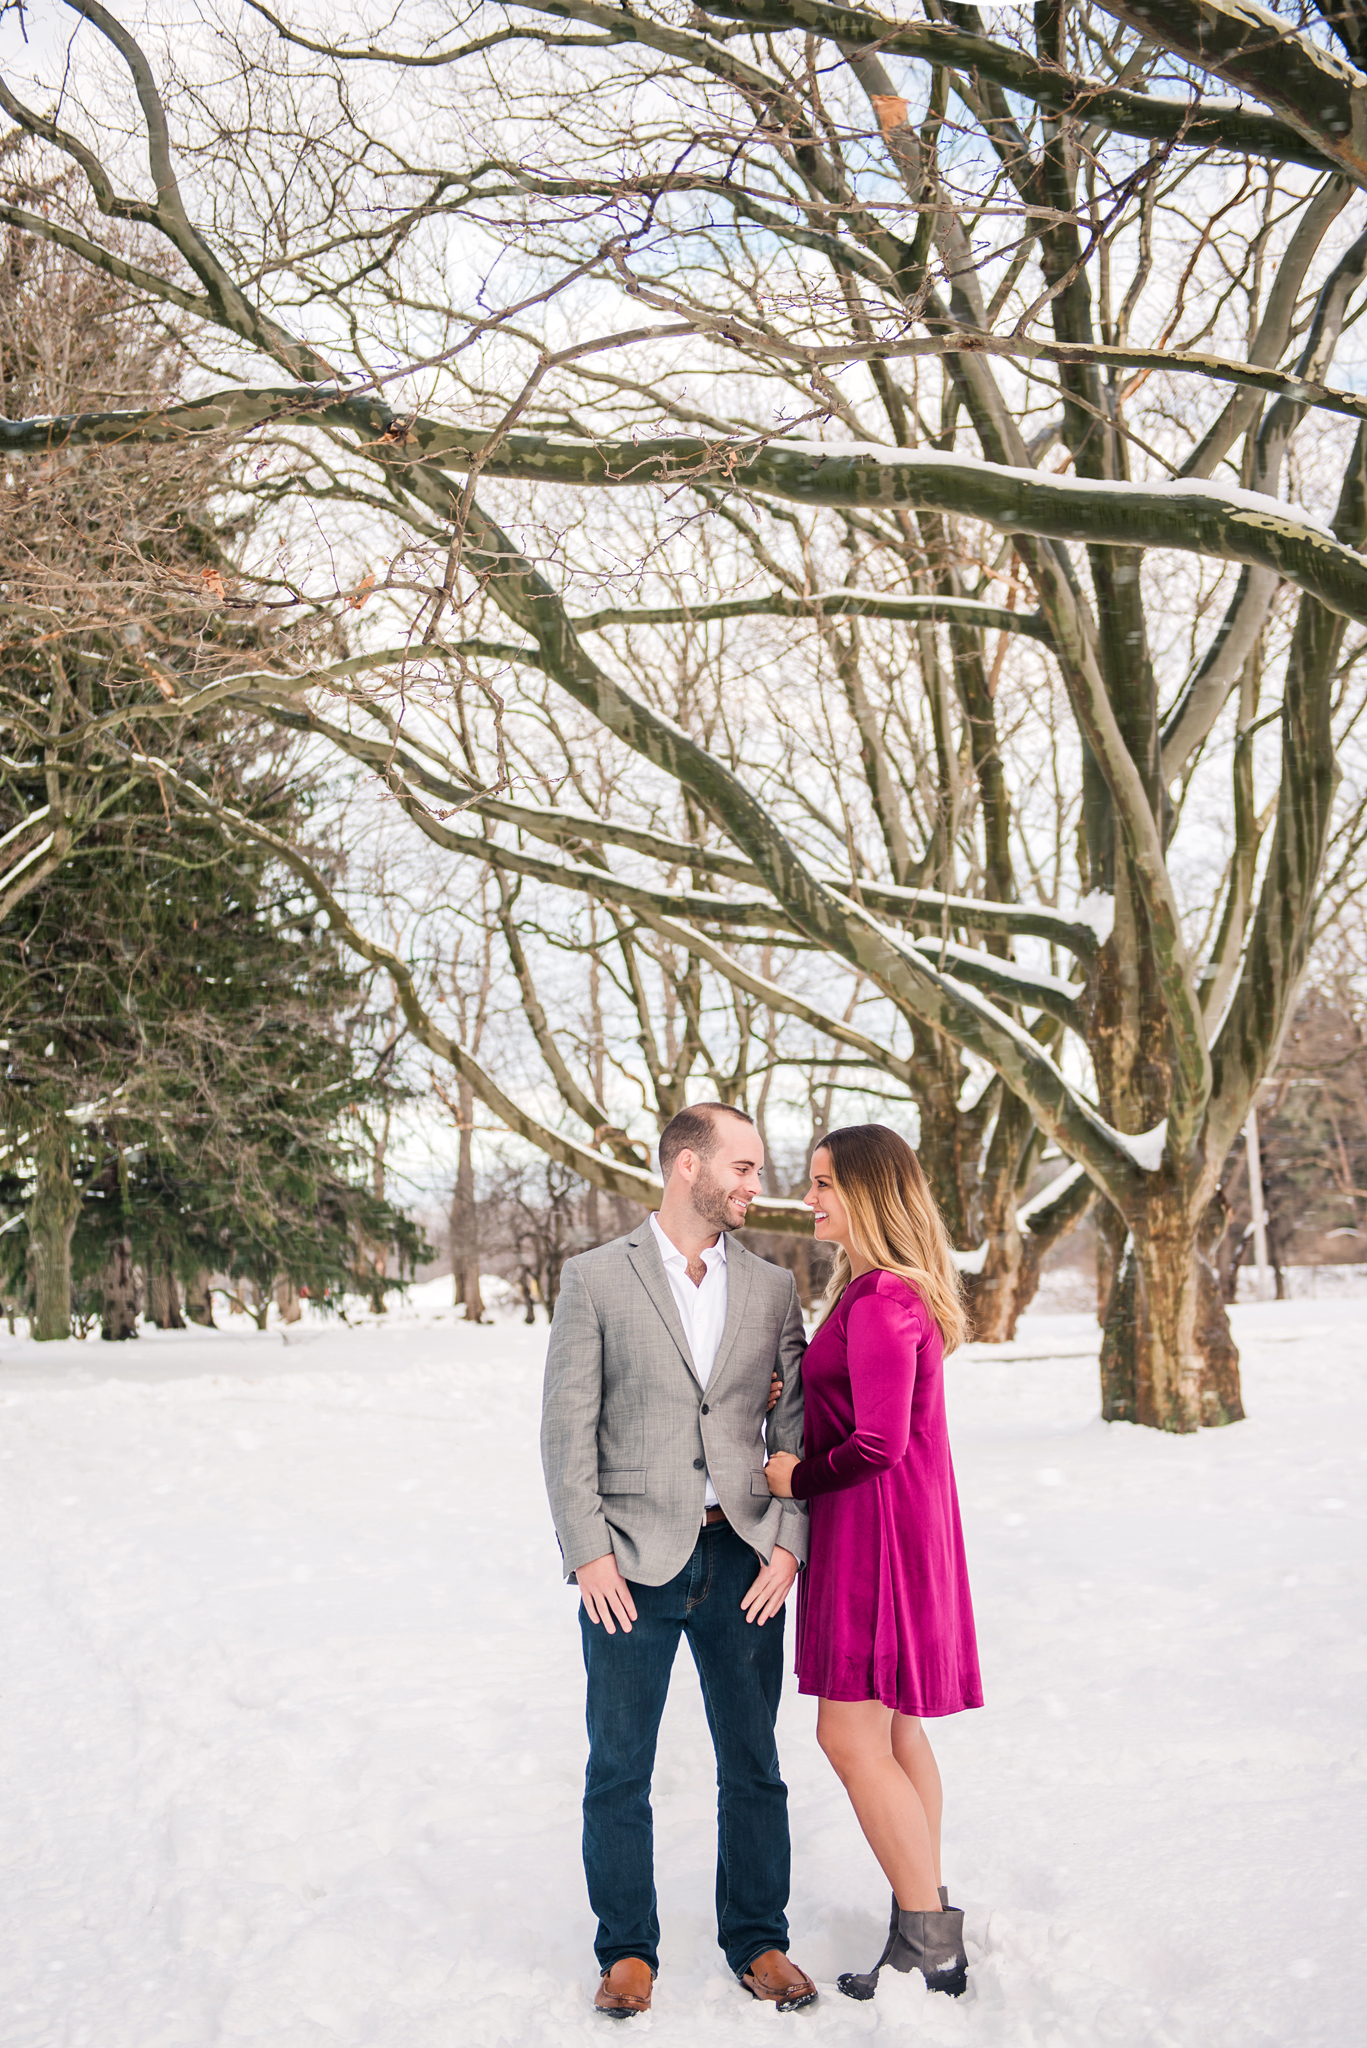 Webster_Park_Engagement_Session_Rochester_NY_photographer_DSC_6344.jpg